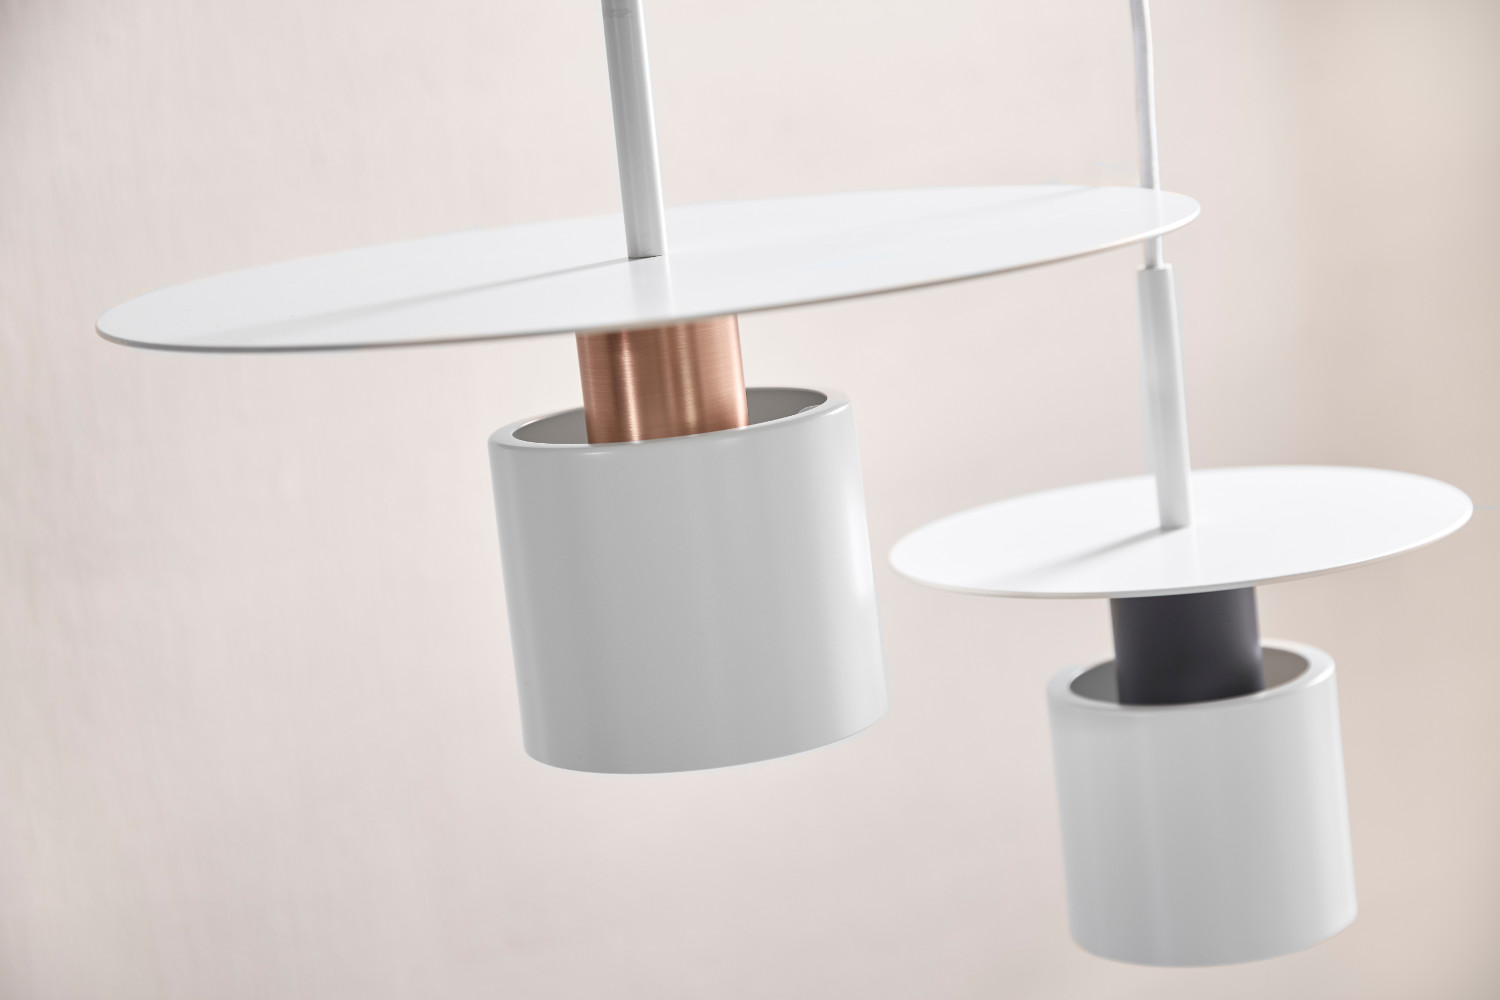 Photo Frandsen Lighting 2 & 90u0027s favourite launched in new palette - Nordic Design News